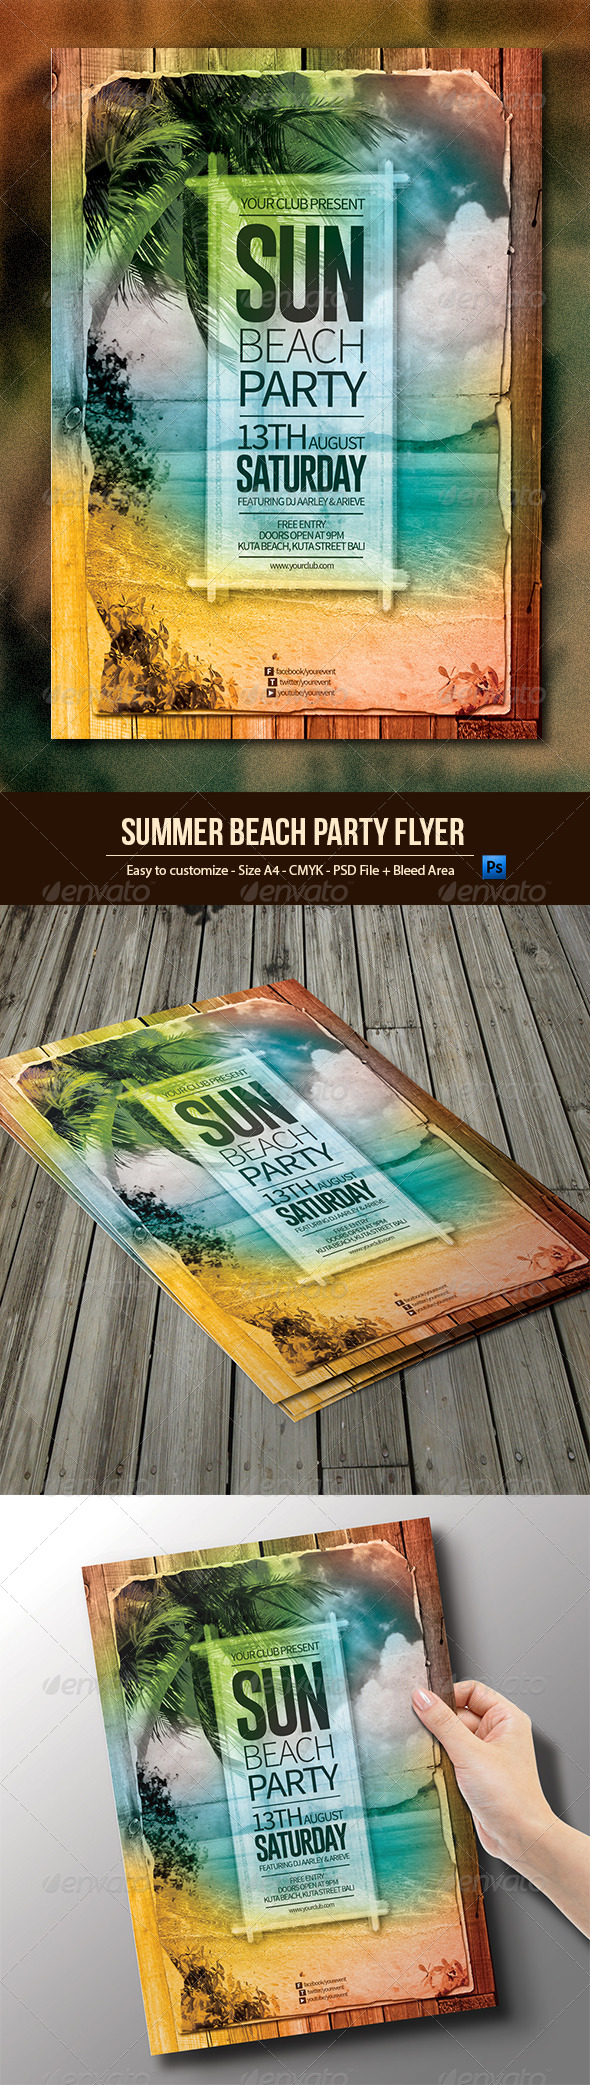 Summer Beach Event Flyer  Summer Beach Party Party Flyer And